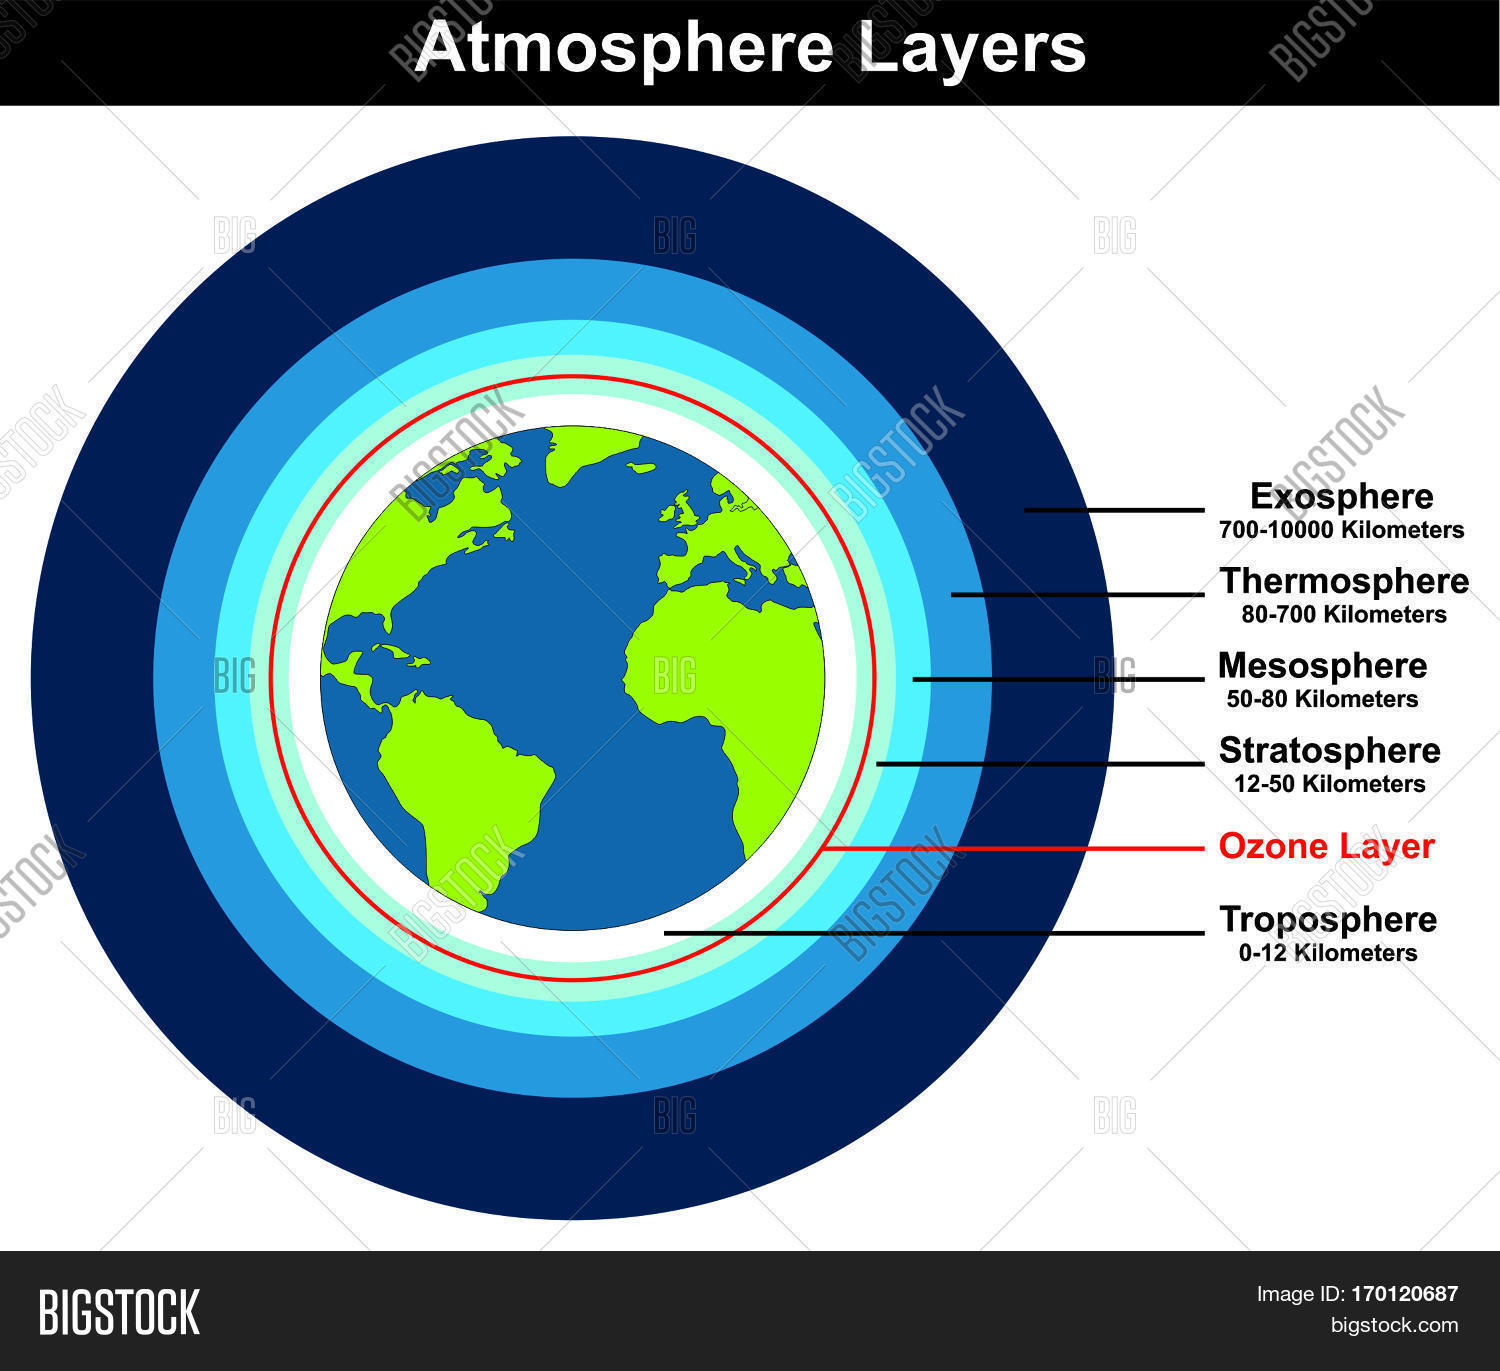 Atmosphere Layers Structure Earth Image Amp Photo